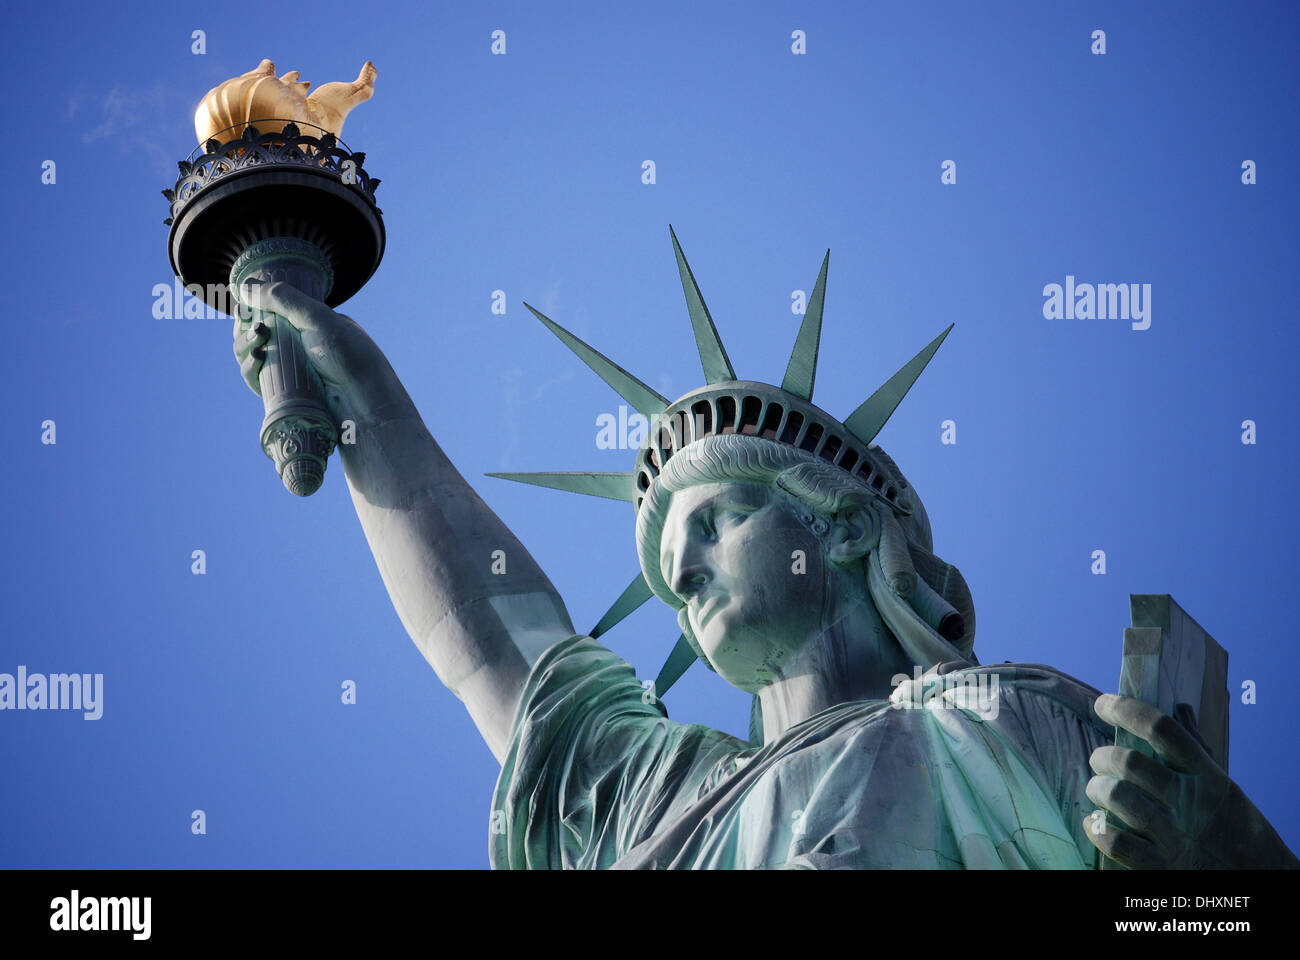 Bust of the Stature Of Liberty, New York City, NY, view from bellow. - Stock Image